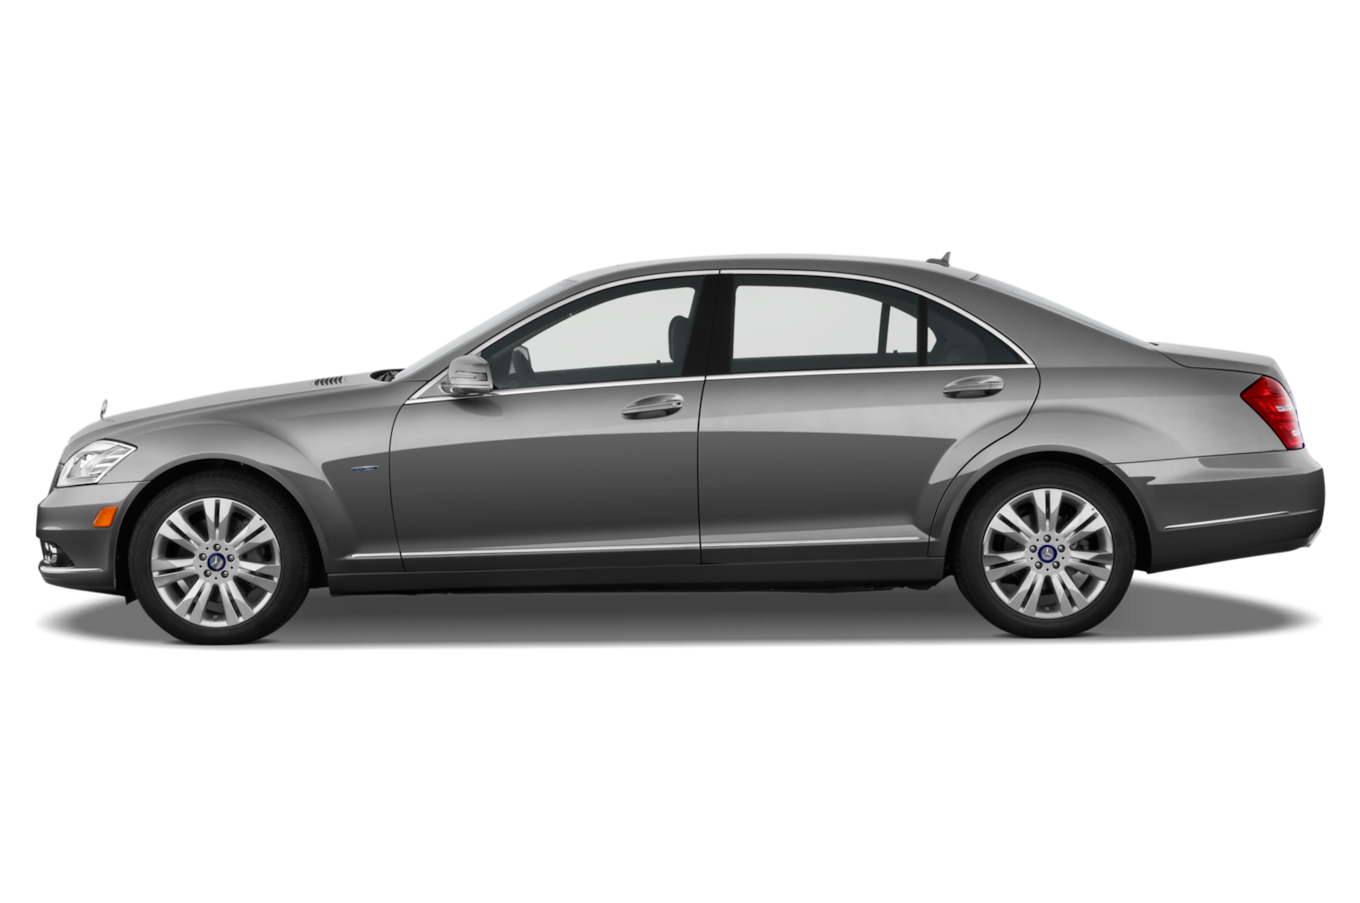 "<span style=""font-weight: bold;"">MERCEDES BENZ S-class LONG W-221</span><br>"